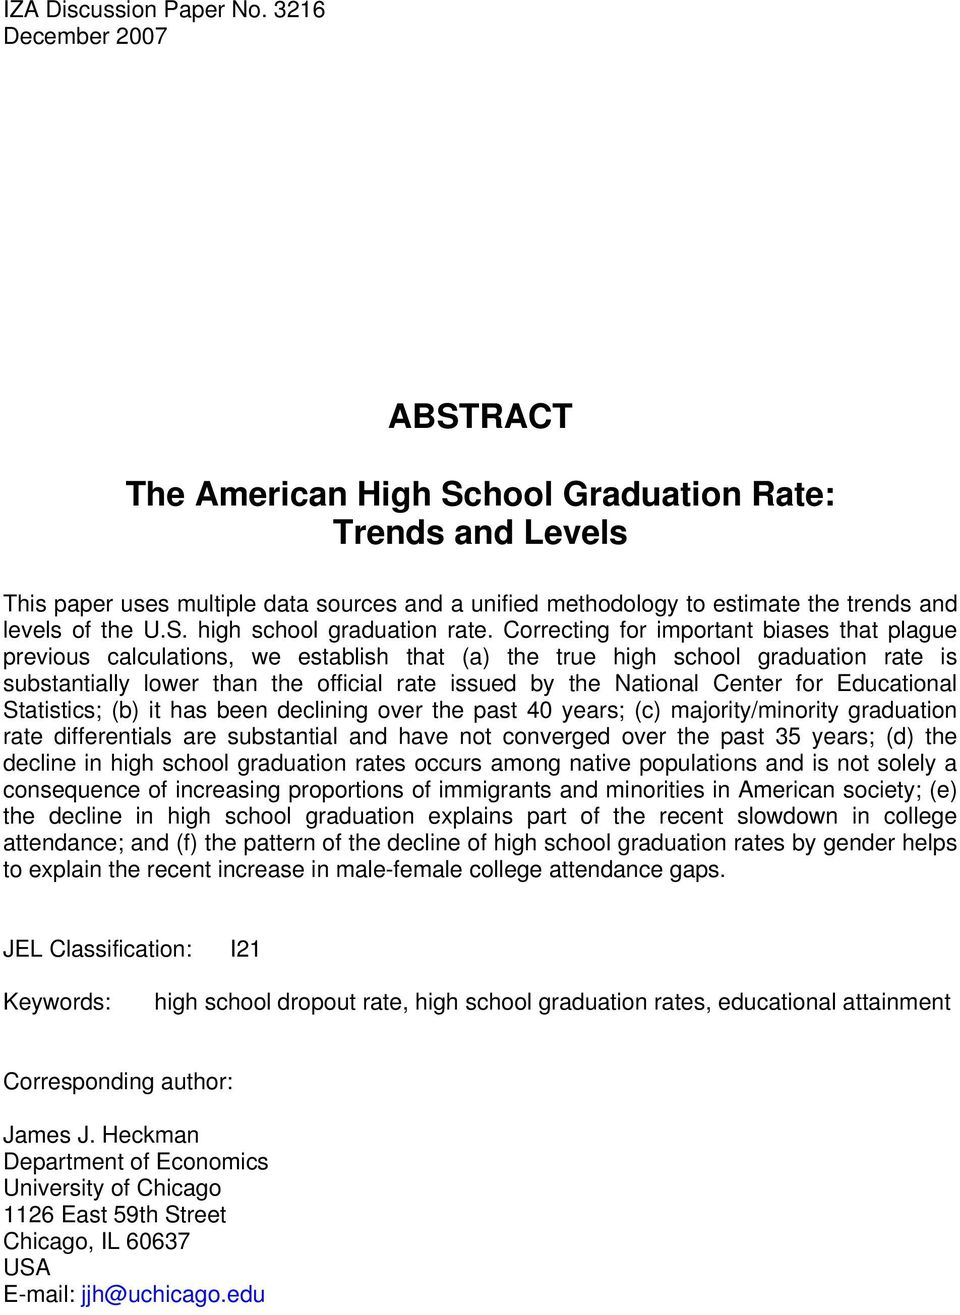 Correcting for important biases that plague previous calculations, we establish that (a) the true high school graduation rate is substantially lower than the official rate issued by the National